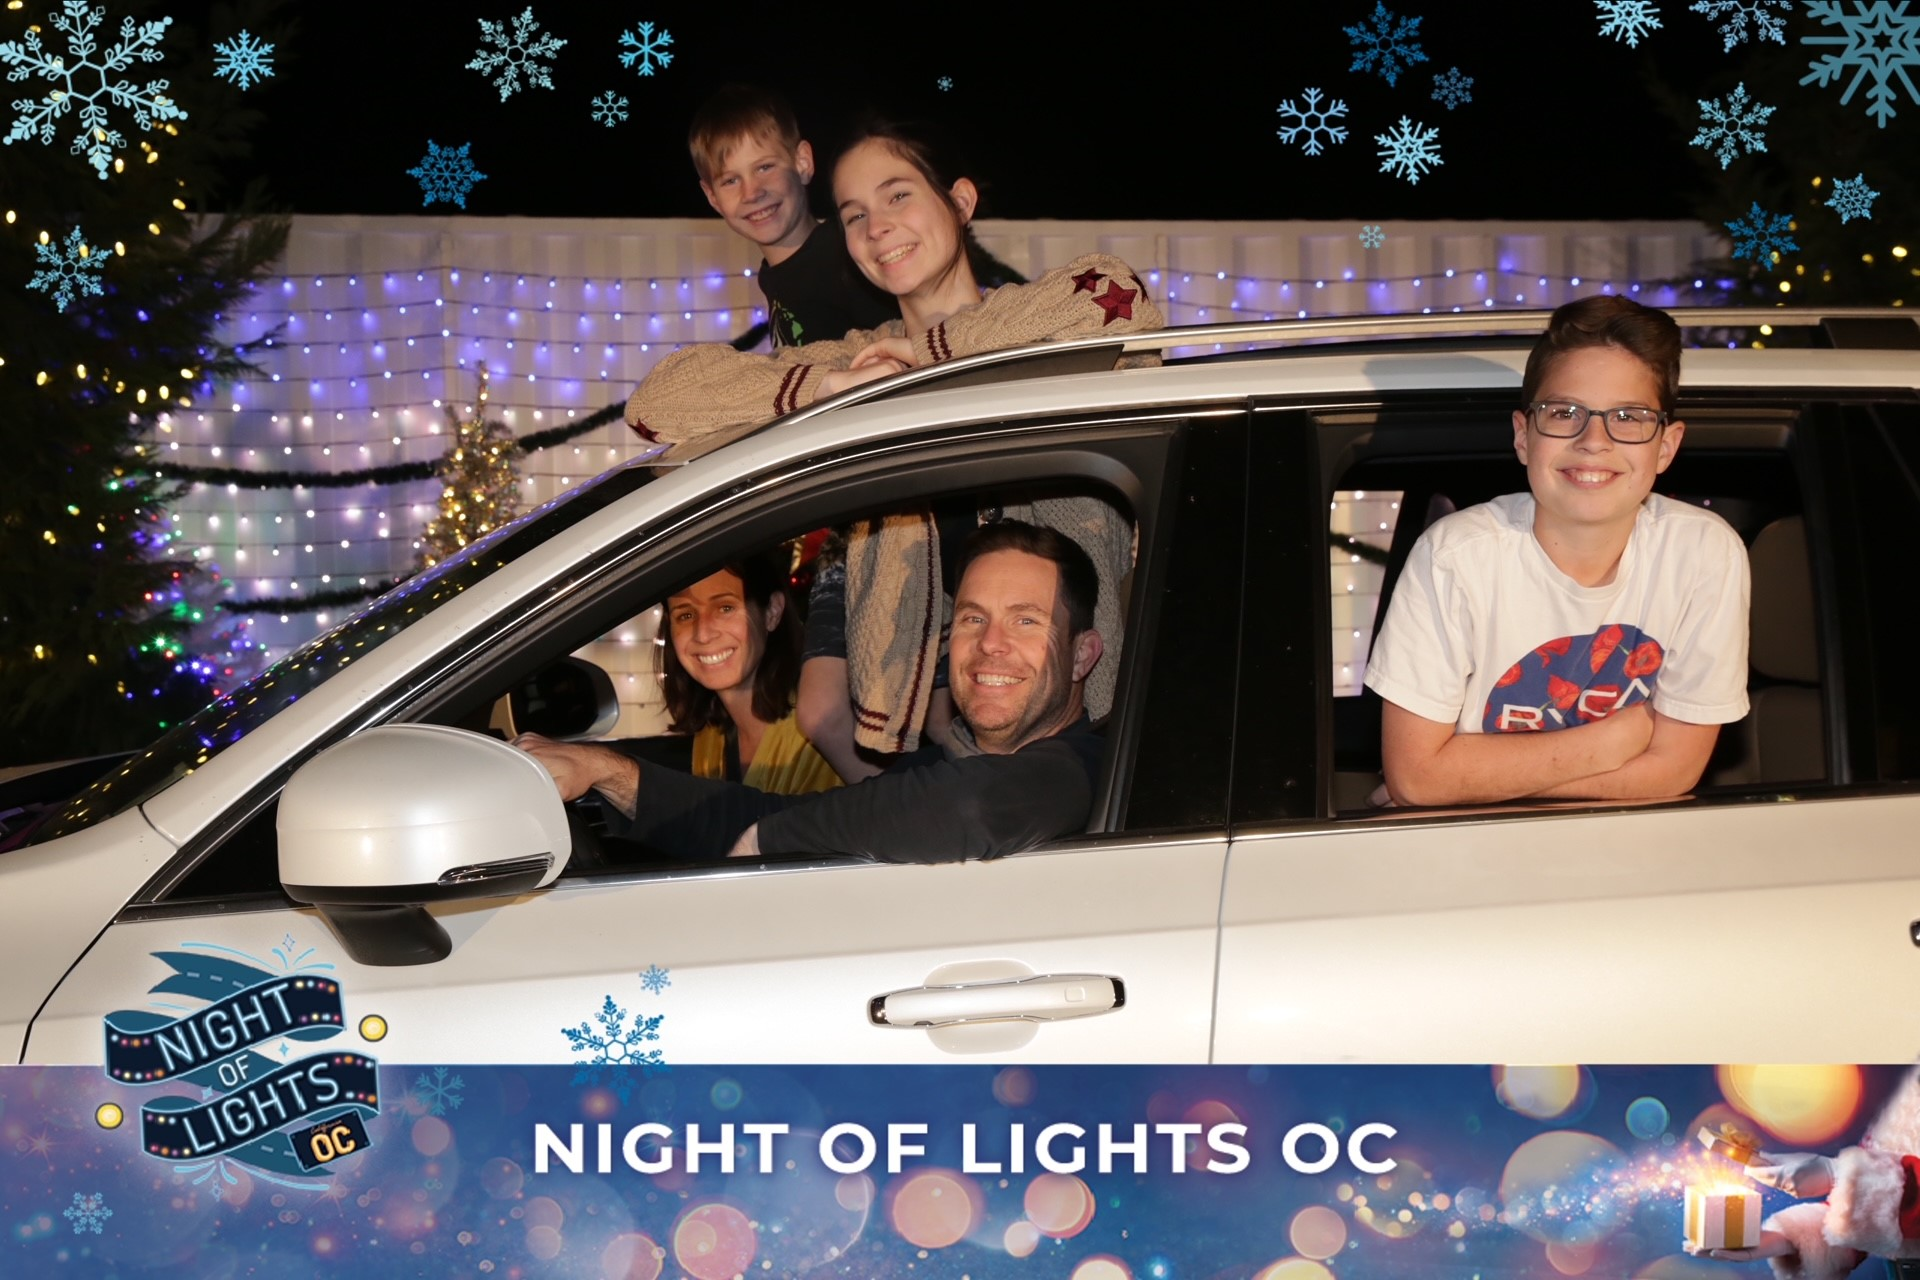 family in car at Night of Lights OC show